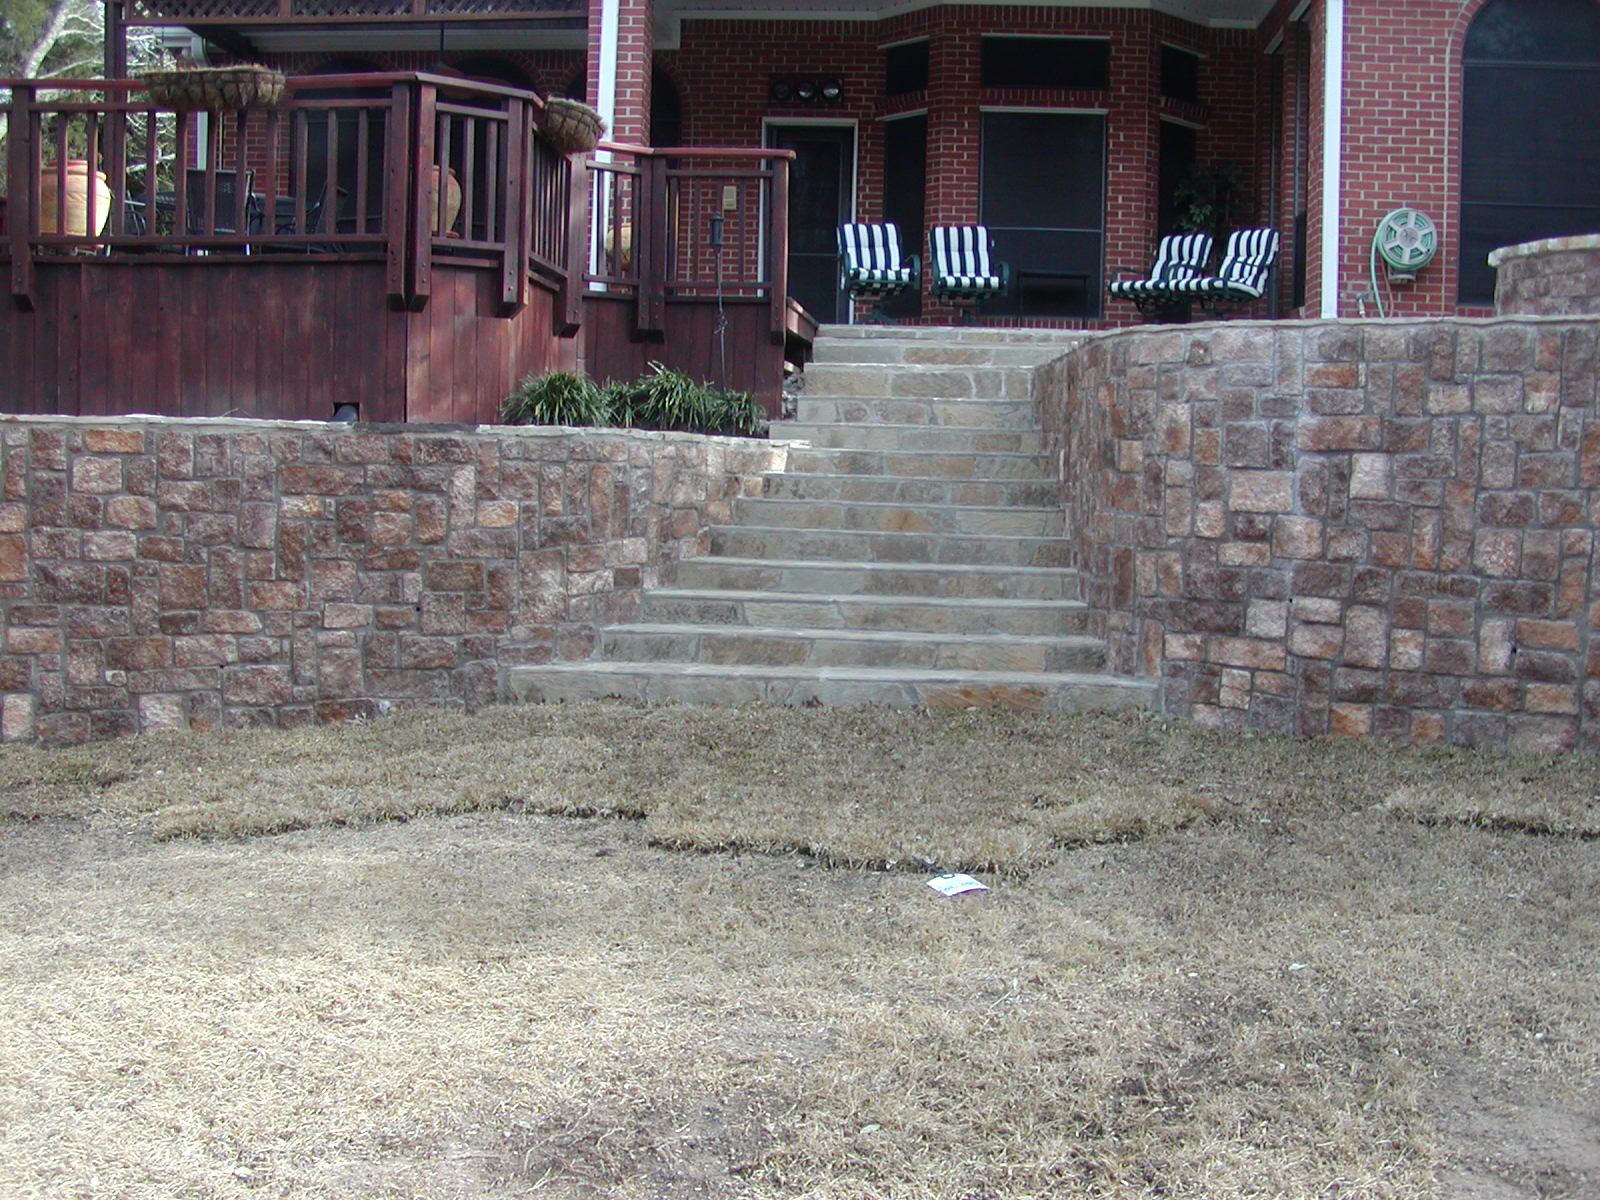 Scott Design & Construction  Drainage Retaining Walls In. Martha Stewart Patio Swing Canopy Replacement. Large Patio Chair Cushions. Outdoor Patio Swings Australia. Patio Furniture Sold At Home Depot. Outdoor Patio Design Pittsburgh. Replacement Glass For Patio Table Ontario. Patio Table Umbrella Fan. Patio Chairs Made Out Of Pallets